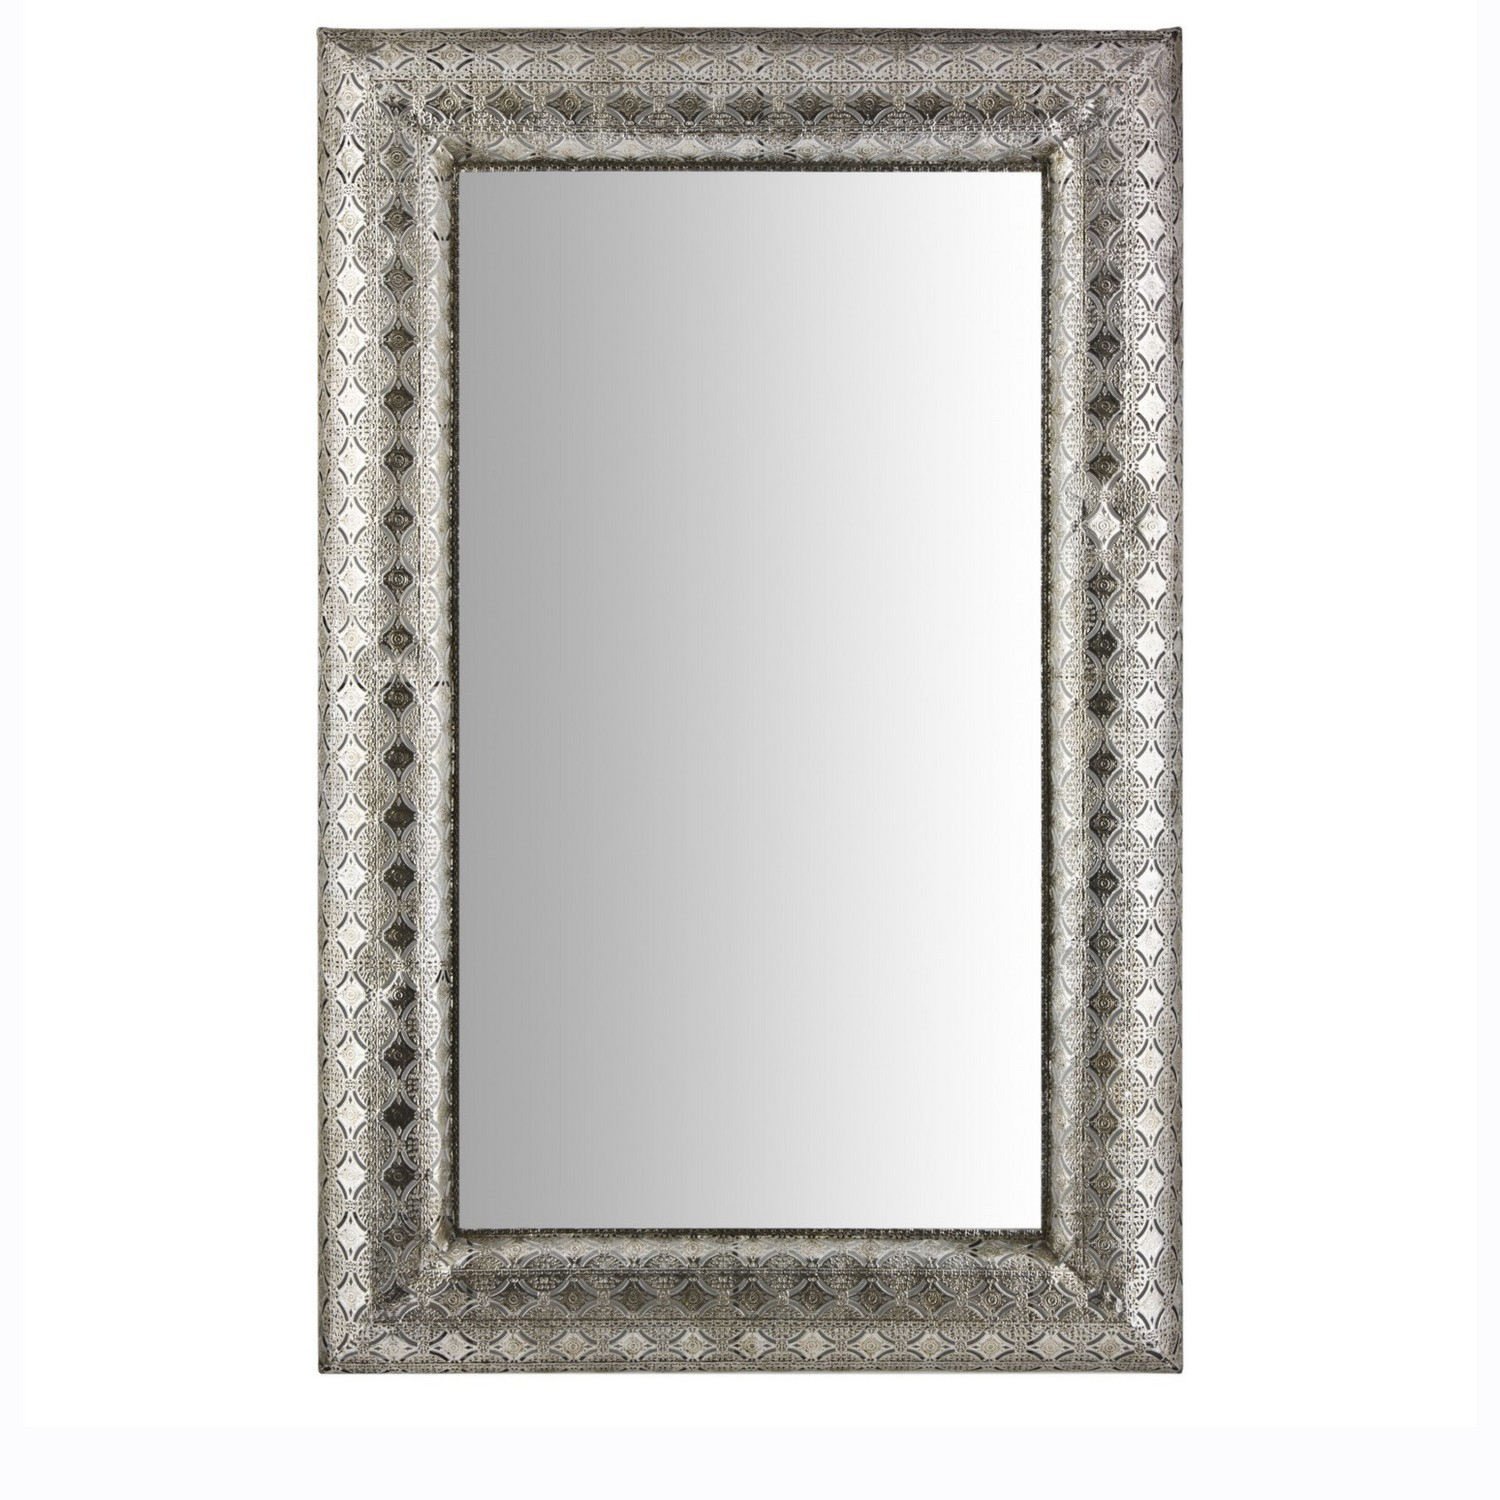 Mirrors | The Range Pertaining To Rectangle Ornate Geometric Wall Mirrors (Photo 18 of 20)